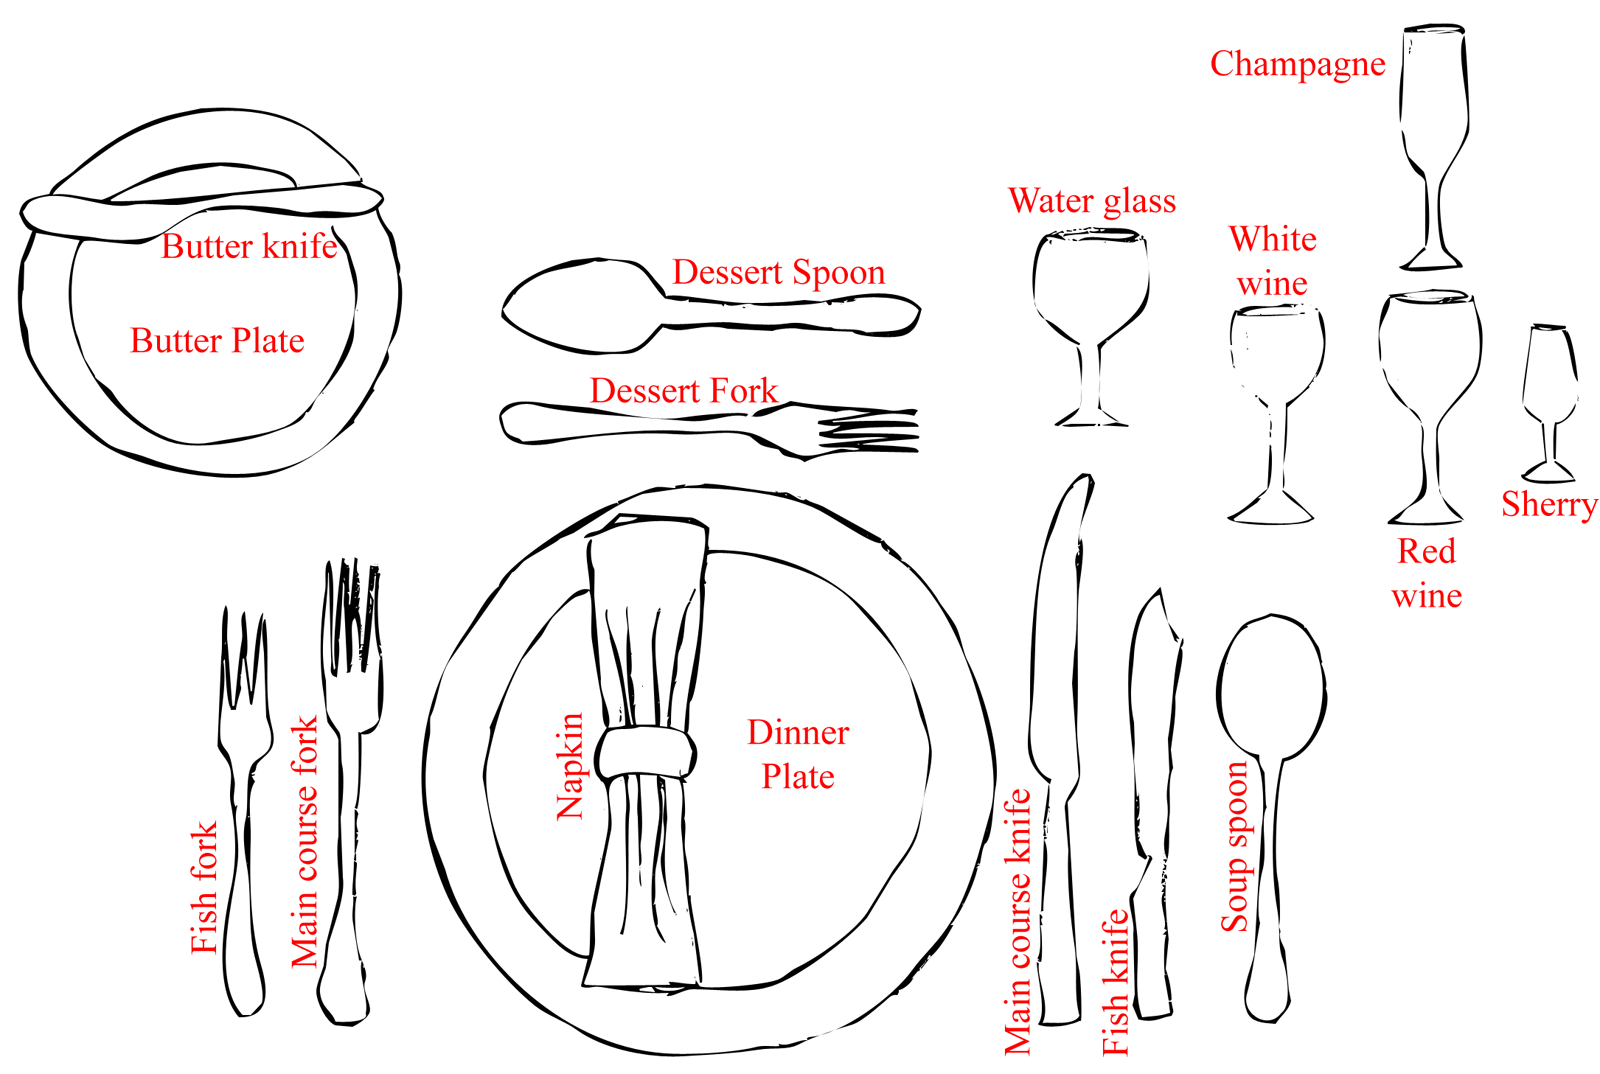 dining table set up images. formal dinner setting dining table set up images